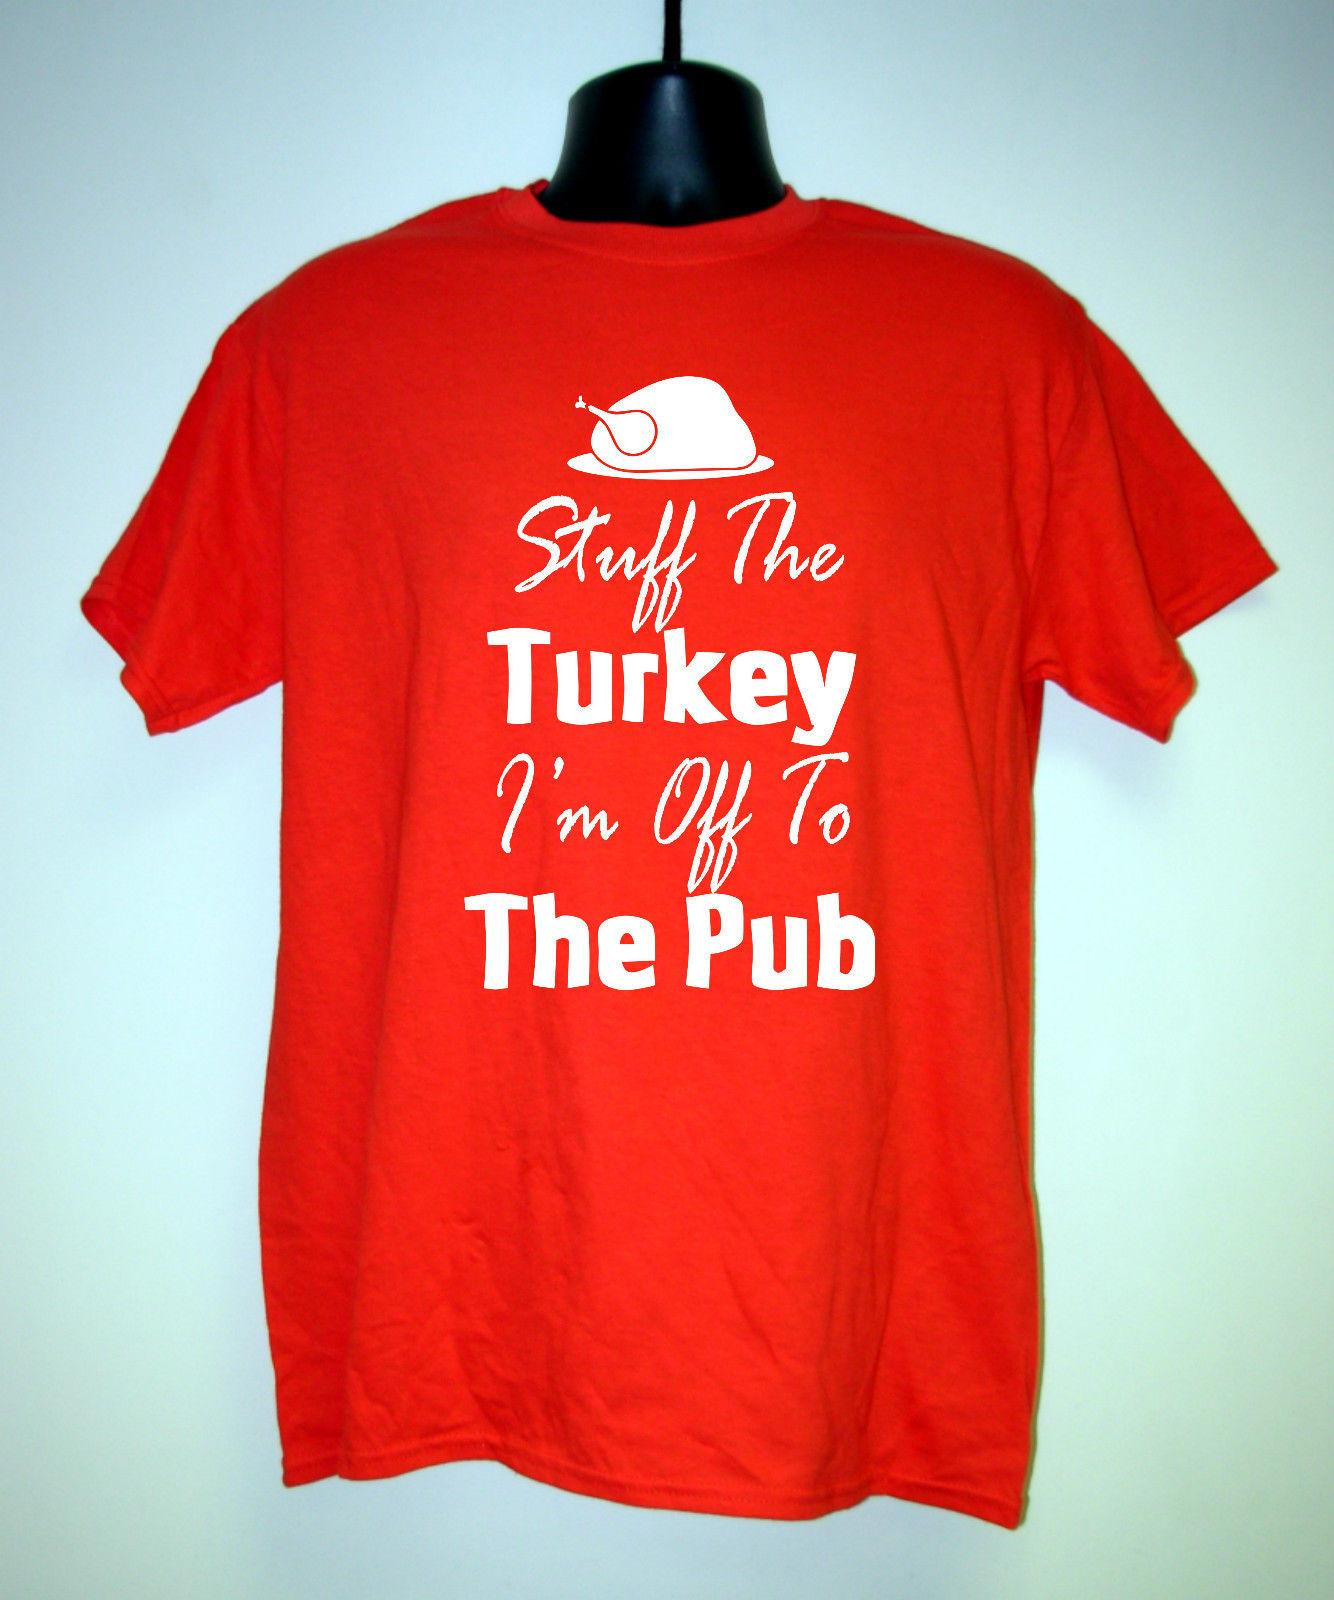 mens funny christmas t shirt stuff the turkey im off to the pub great giftunisex funny gift casual tee clever funny t shirts funny tshirts from - Funny Christmas T Shirts